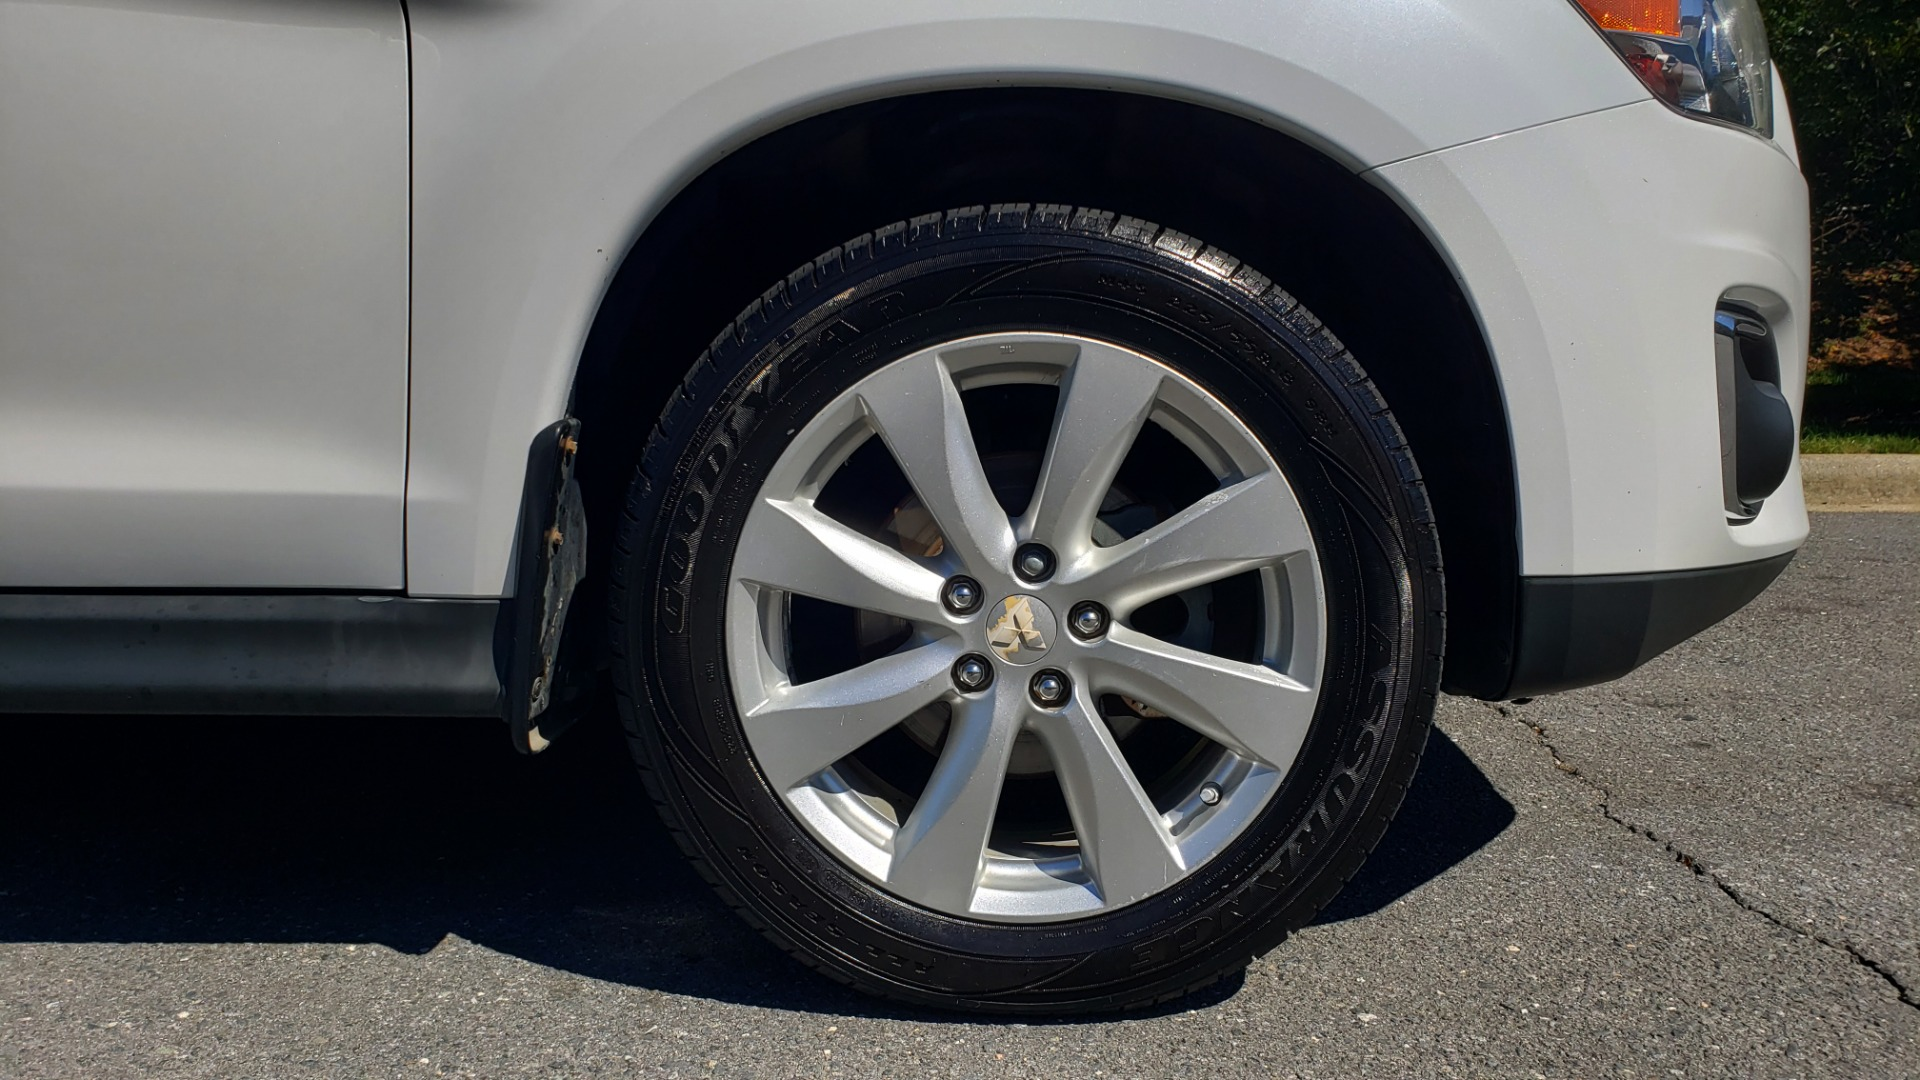 Used 2013 Mitsubishi OUTLANDER SPORT SE / 2WD / 4-DR SUV / CVT TRANS / PREMIUM SOUND / REARVIEW for sale $8,695 at Formula Imports in Charlotte NC 28227 75